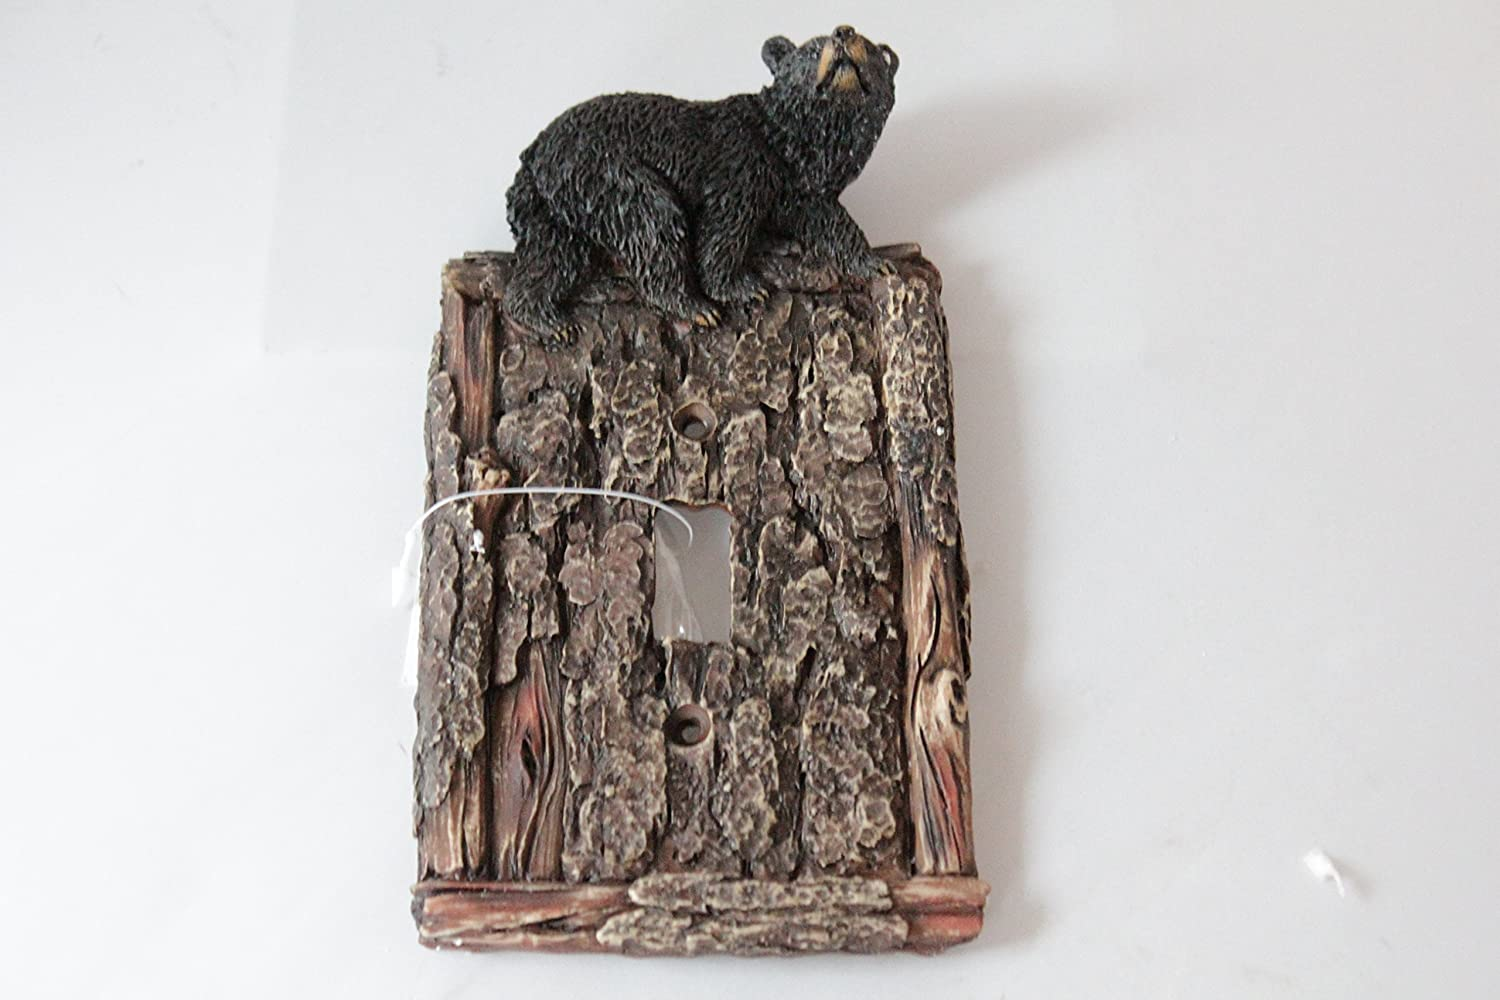 Black Bear Switch Plate Covers Electric Outlet Cover Faux Wood Look Cabin Decor (Single Switch)